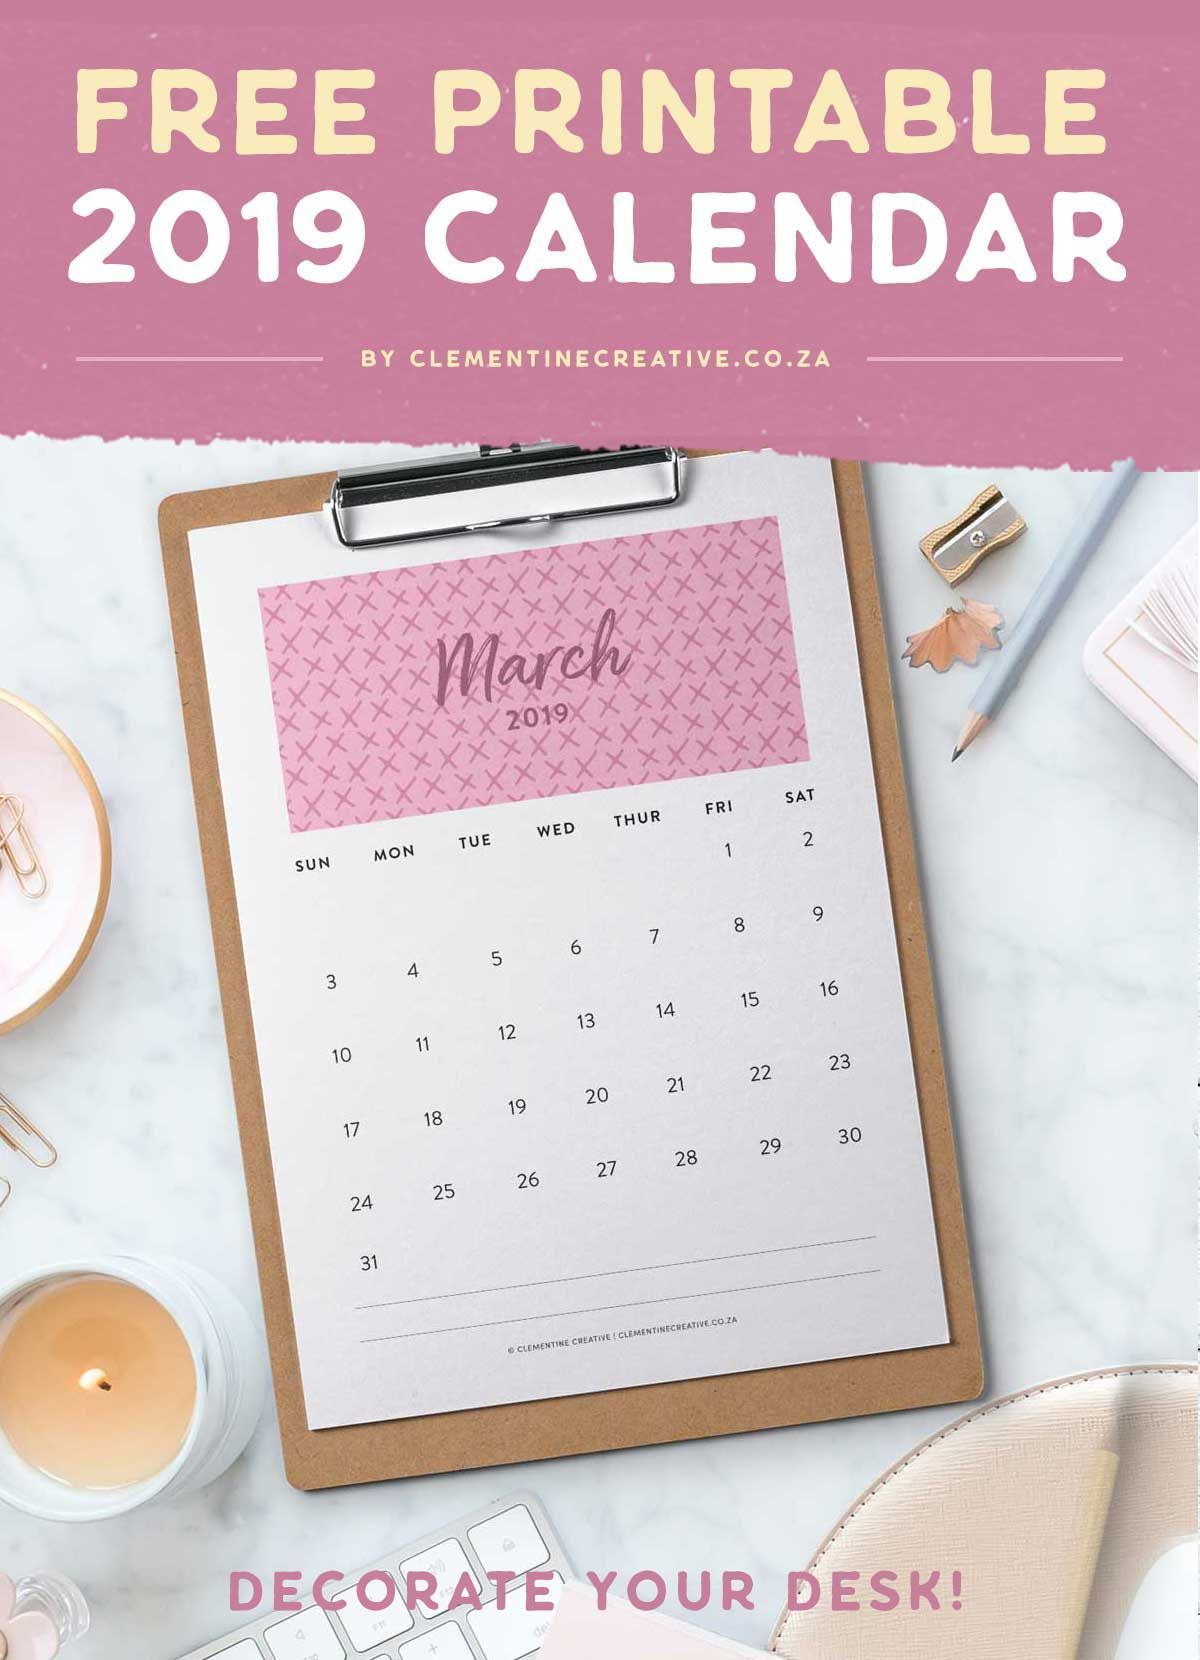 free printable 2019 wall calendar by clementine creative click here